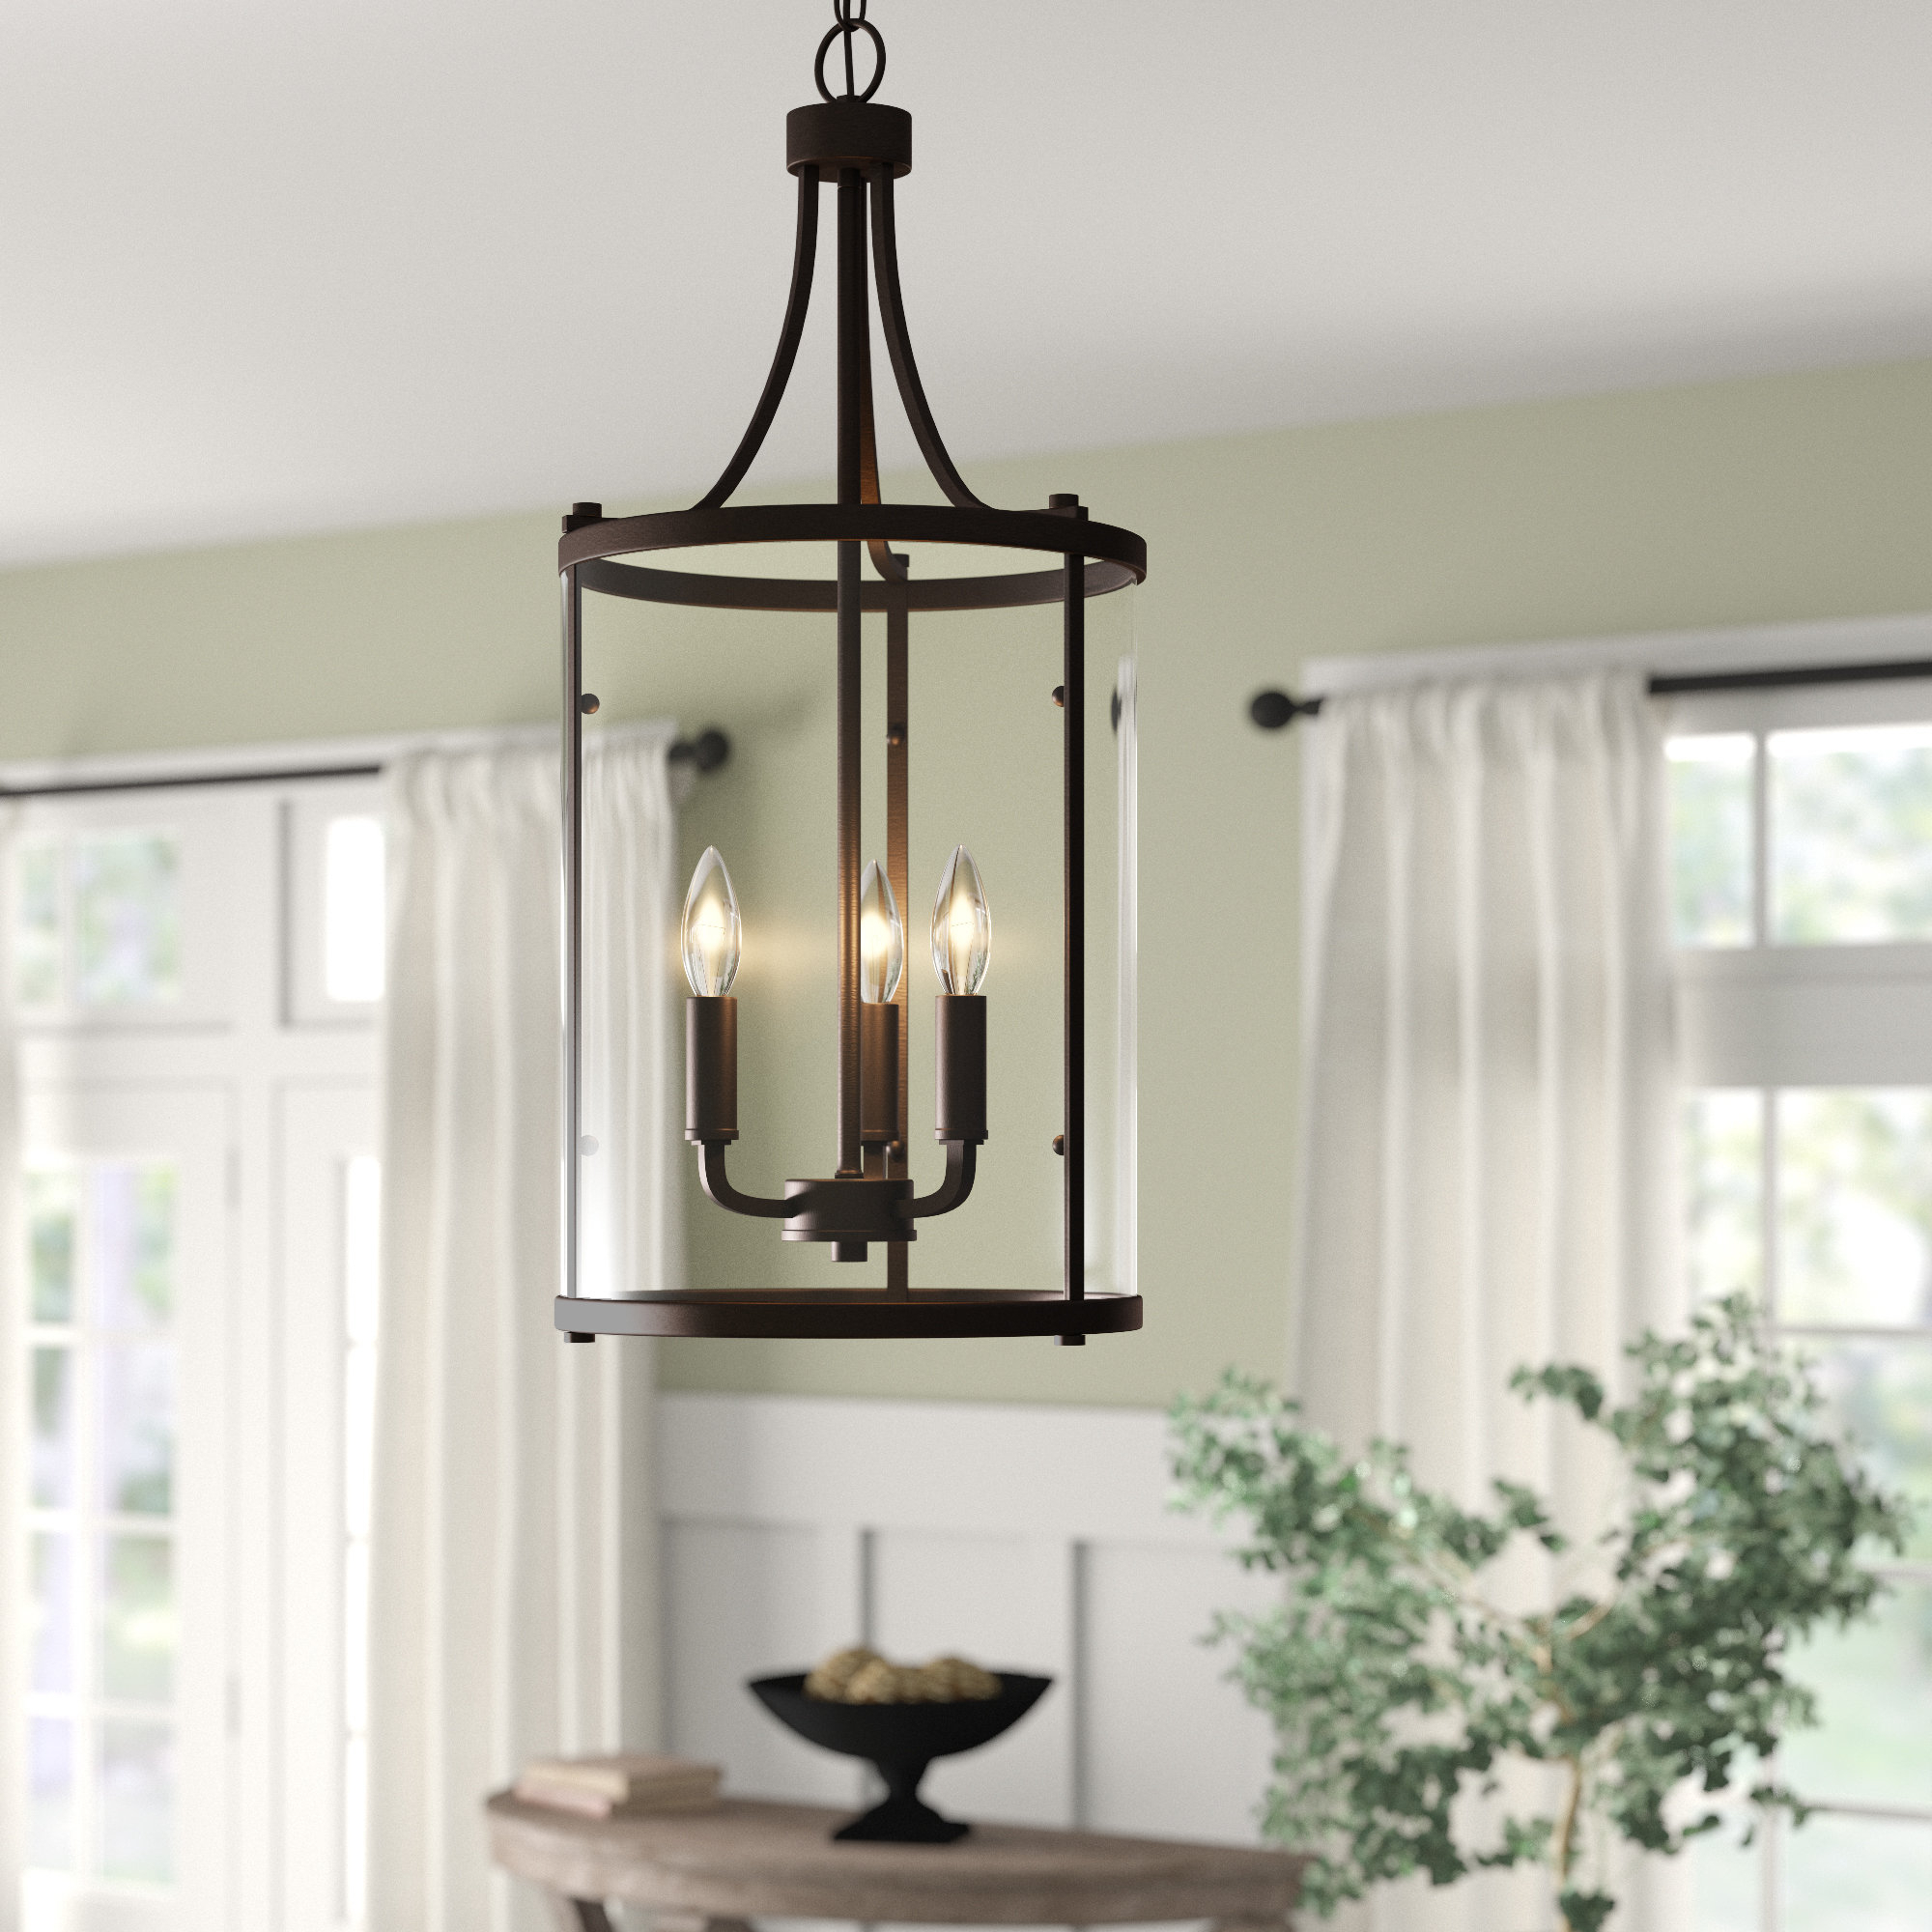 3 Light Lantern Cylinder Pendant Throughout Best And Newest Tessie 3 Light Lantern Cylinder Pendants (Gallery 10 of 20)